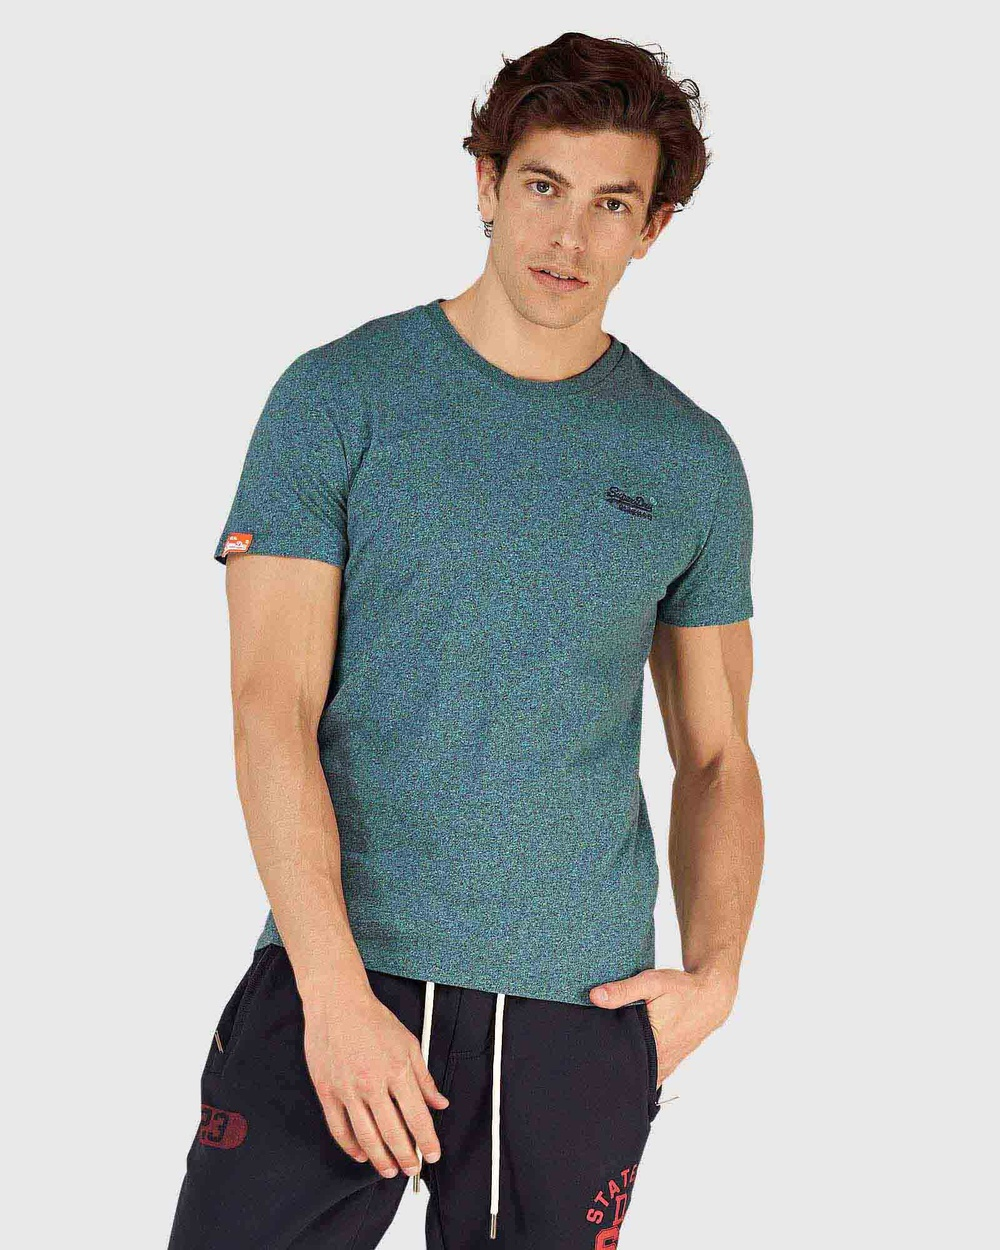 Superdry - Orange Label Embroidery Tee - T-Shirts & Singlets (Pool Blue Navy Grit) Orange Label Embroidery Tee